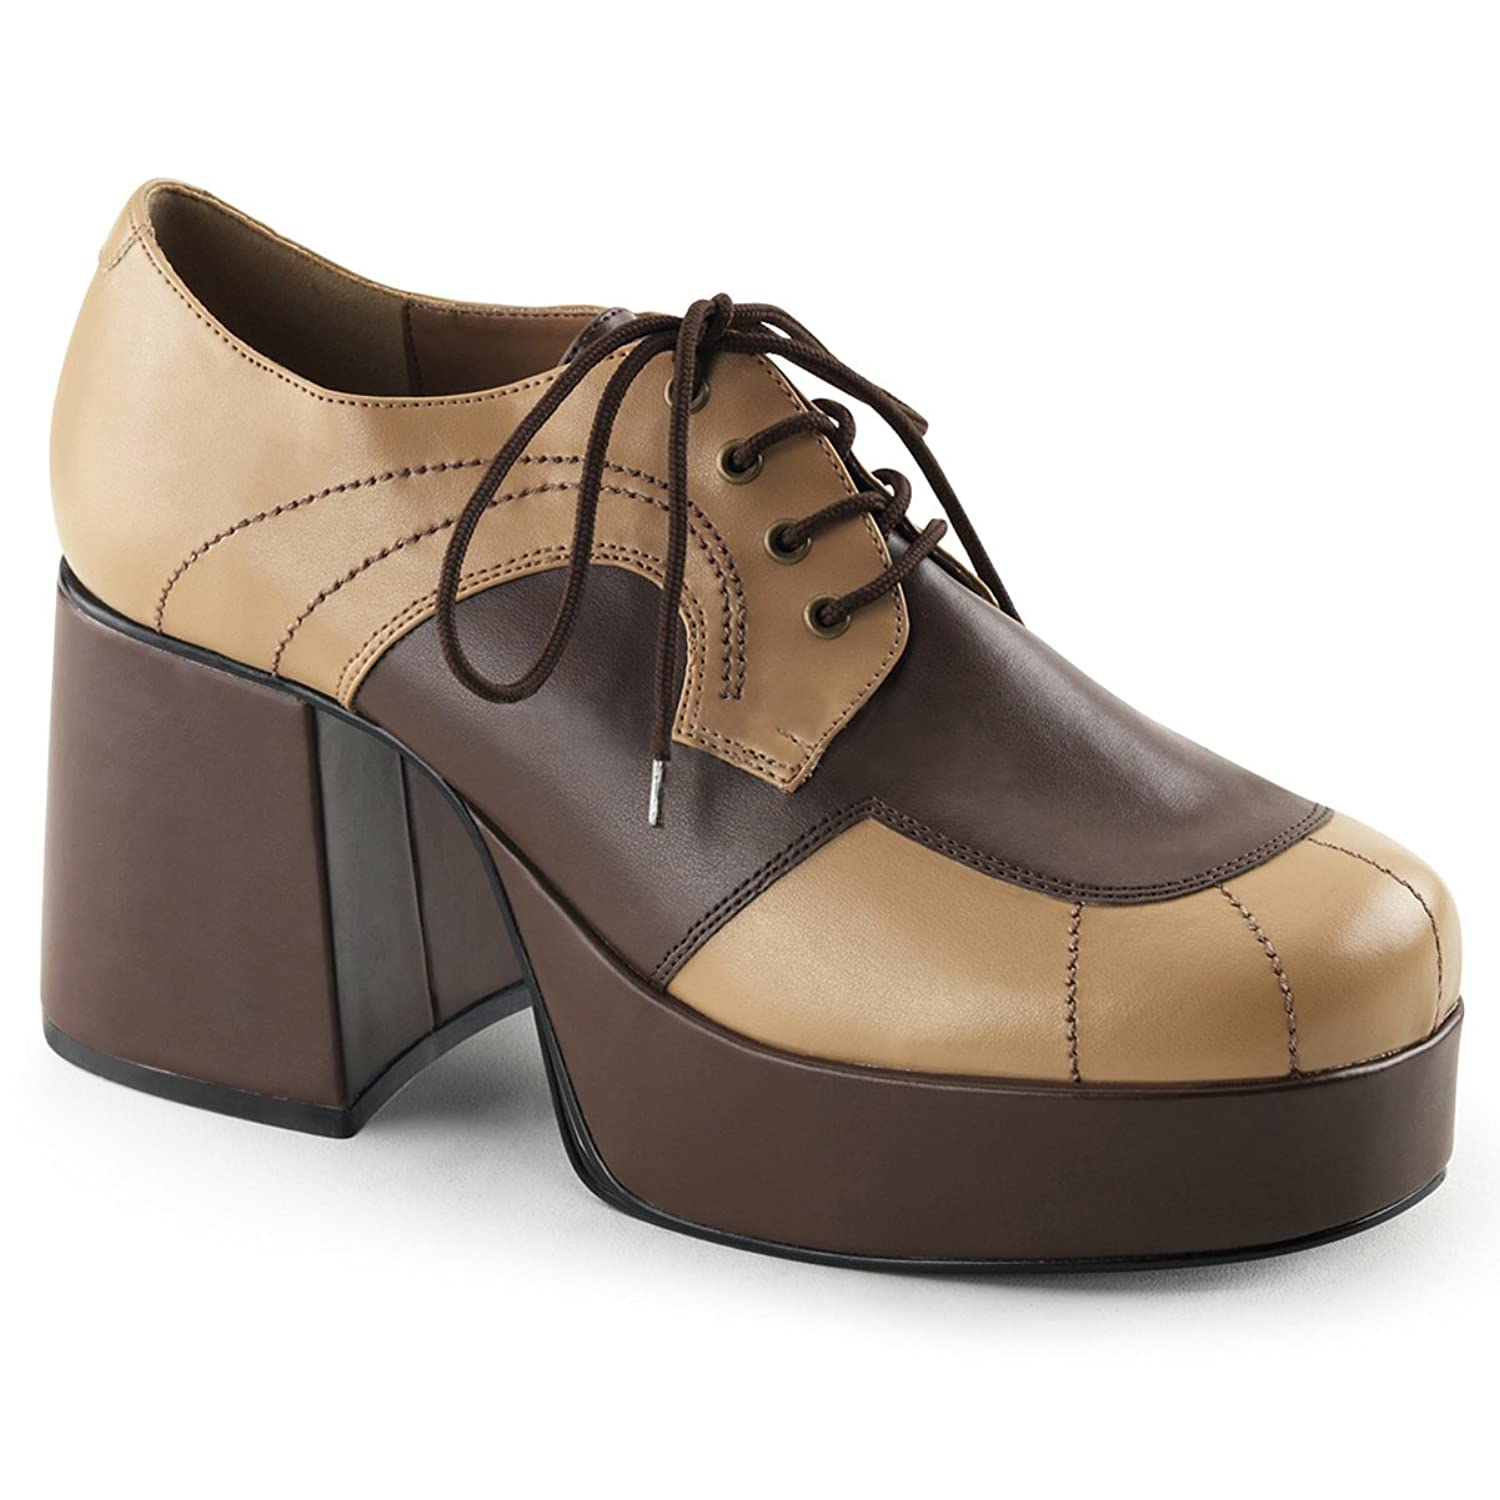 Amazon.com: Mens Brown and Tan Retro Shoes with 3.5 Inch Heels and ...